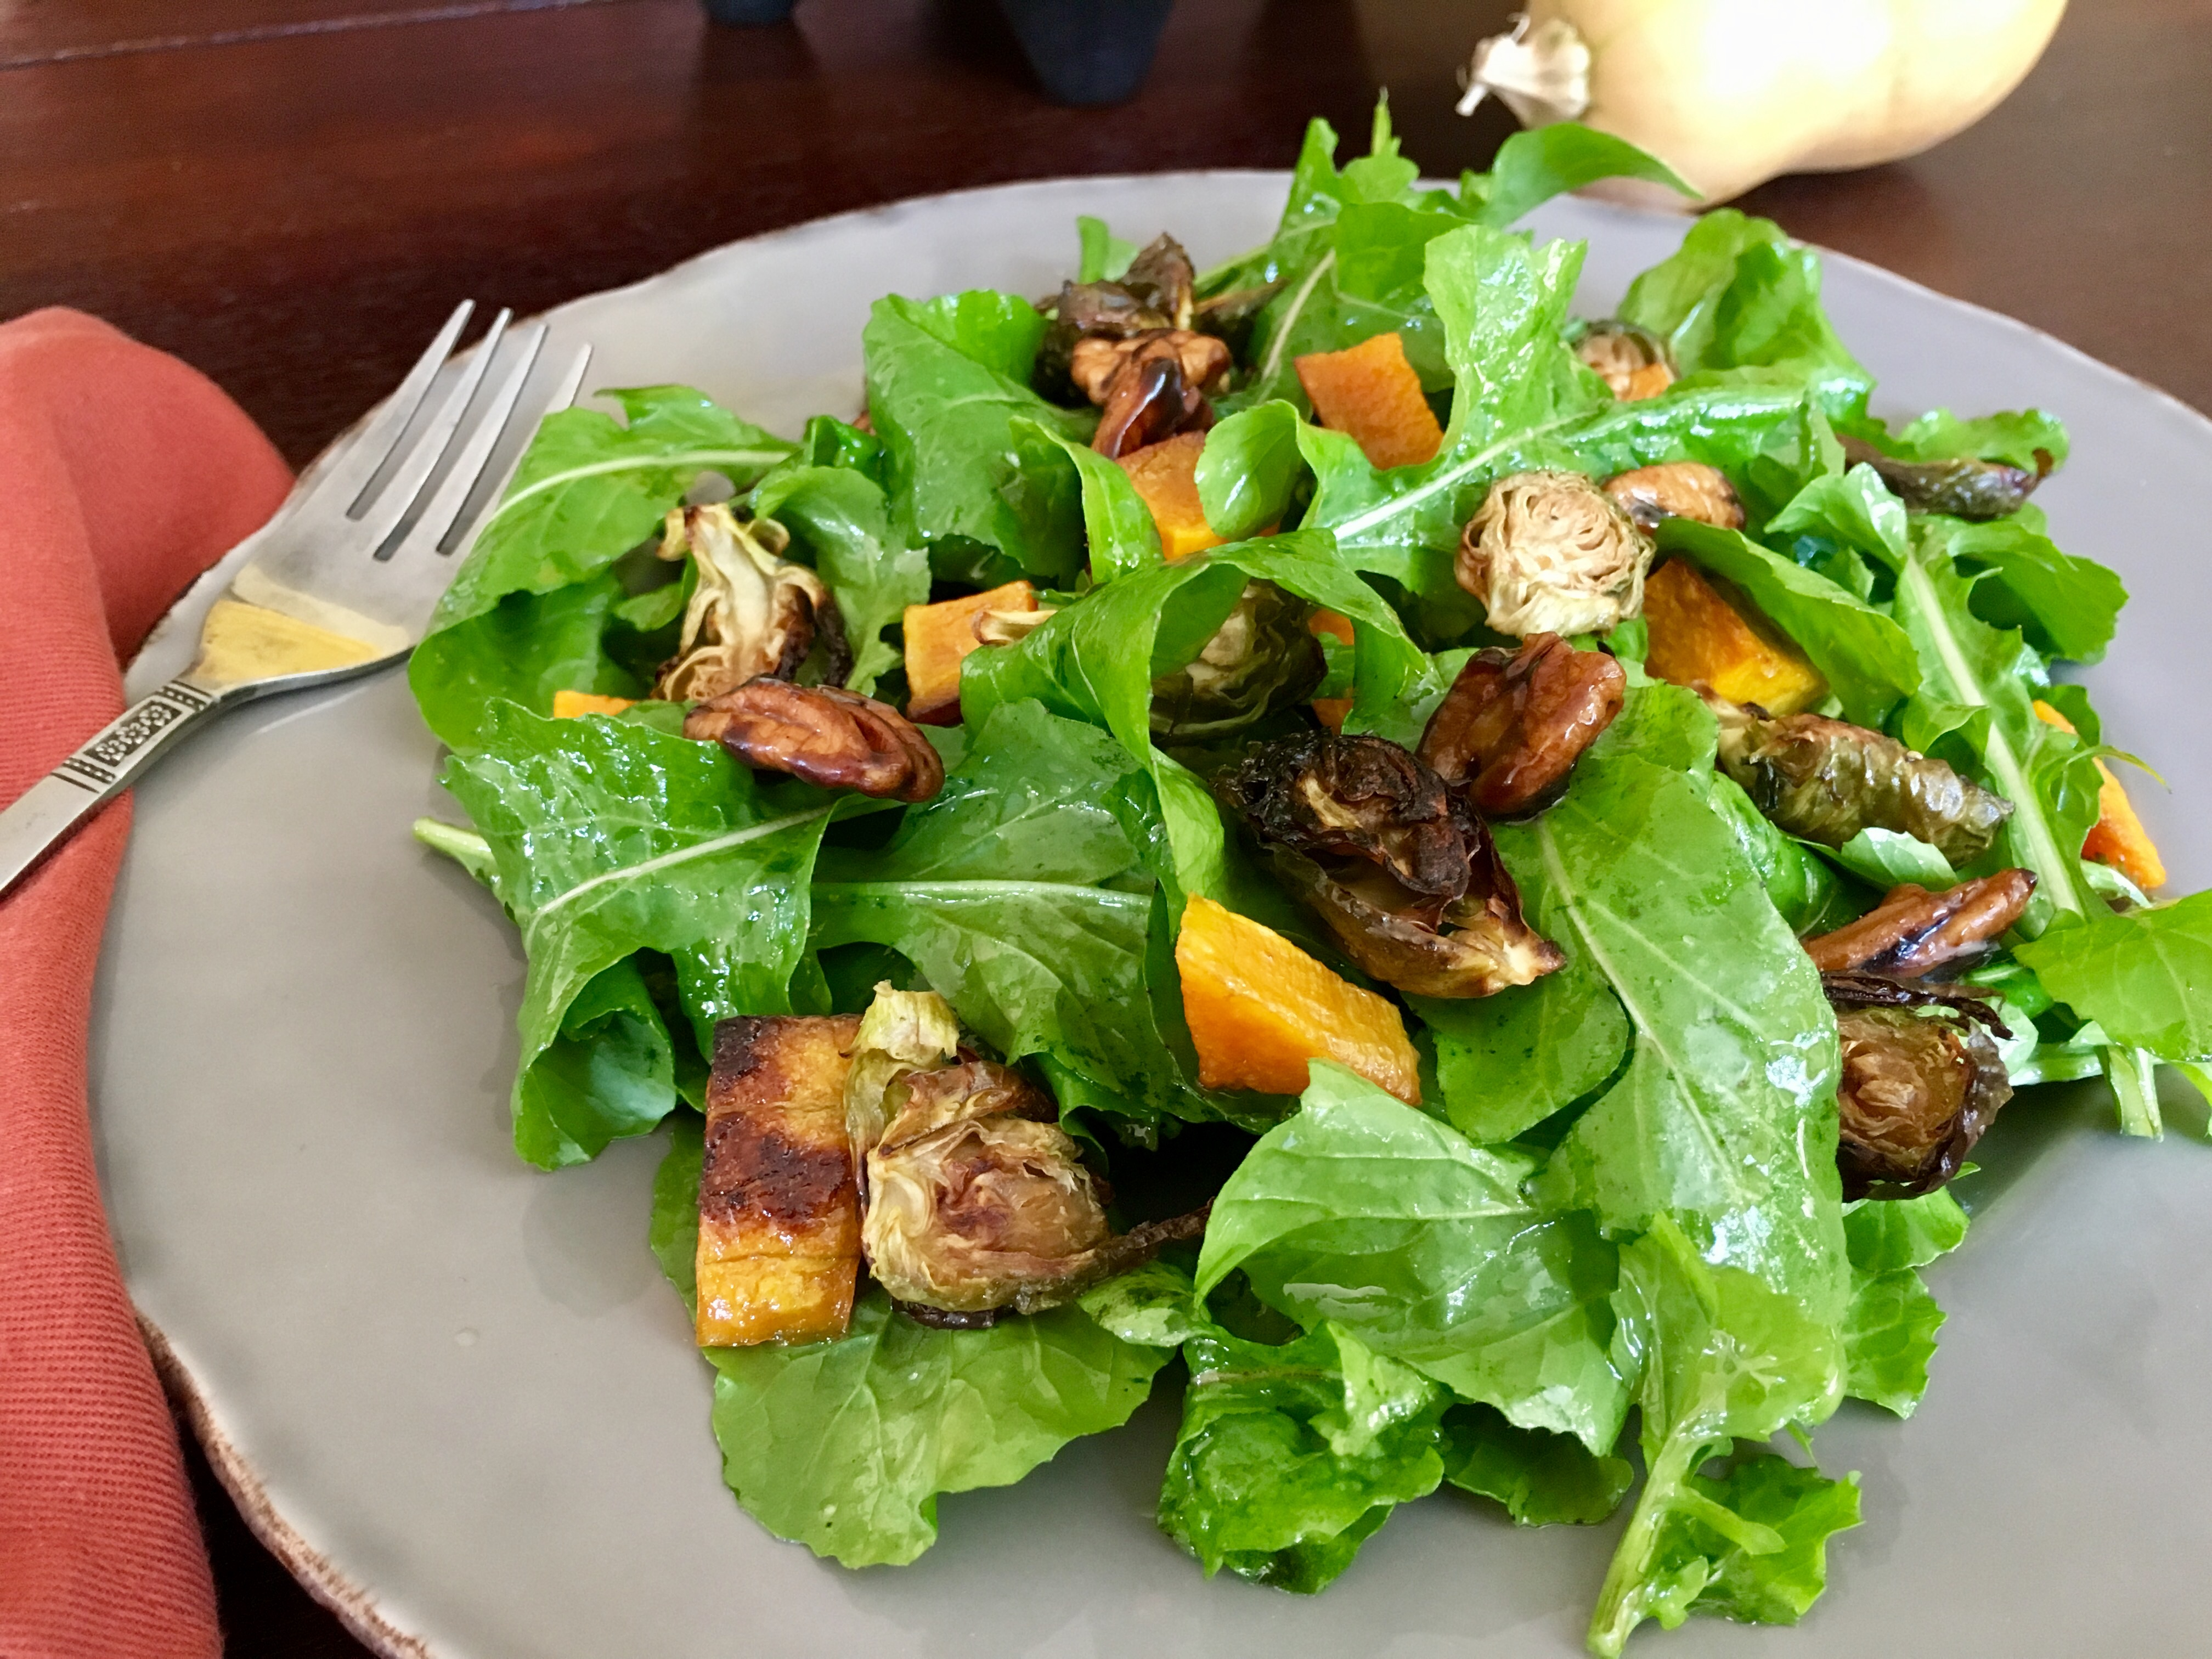 Arugula, Roasted Brussels Sprouts, Butternut Squash & Candied Pecans